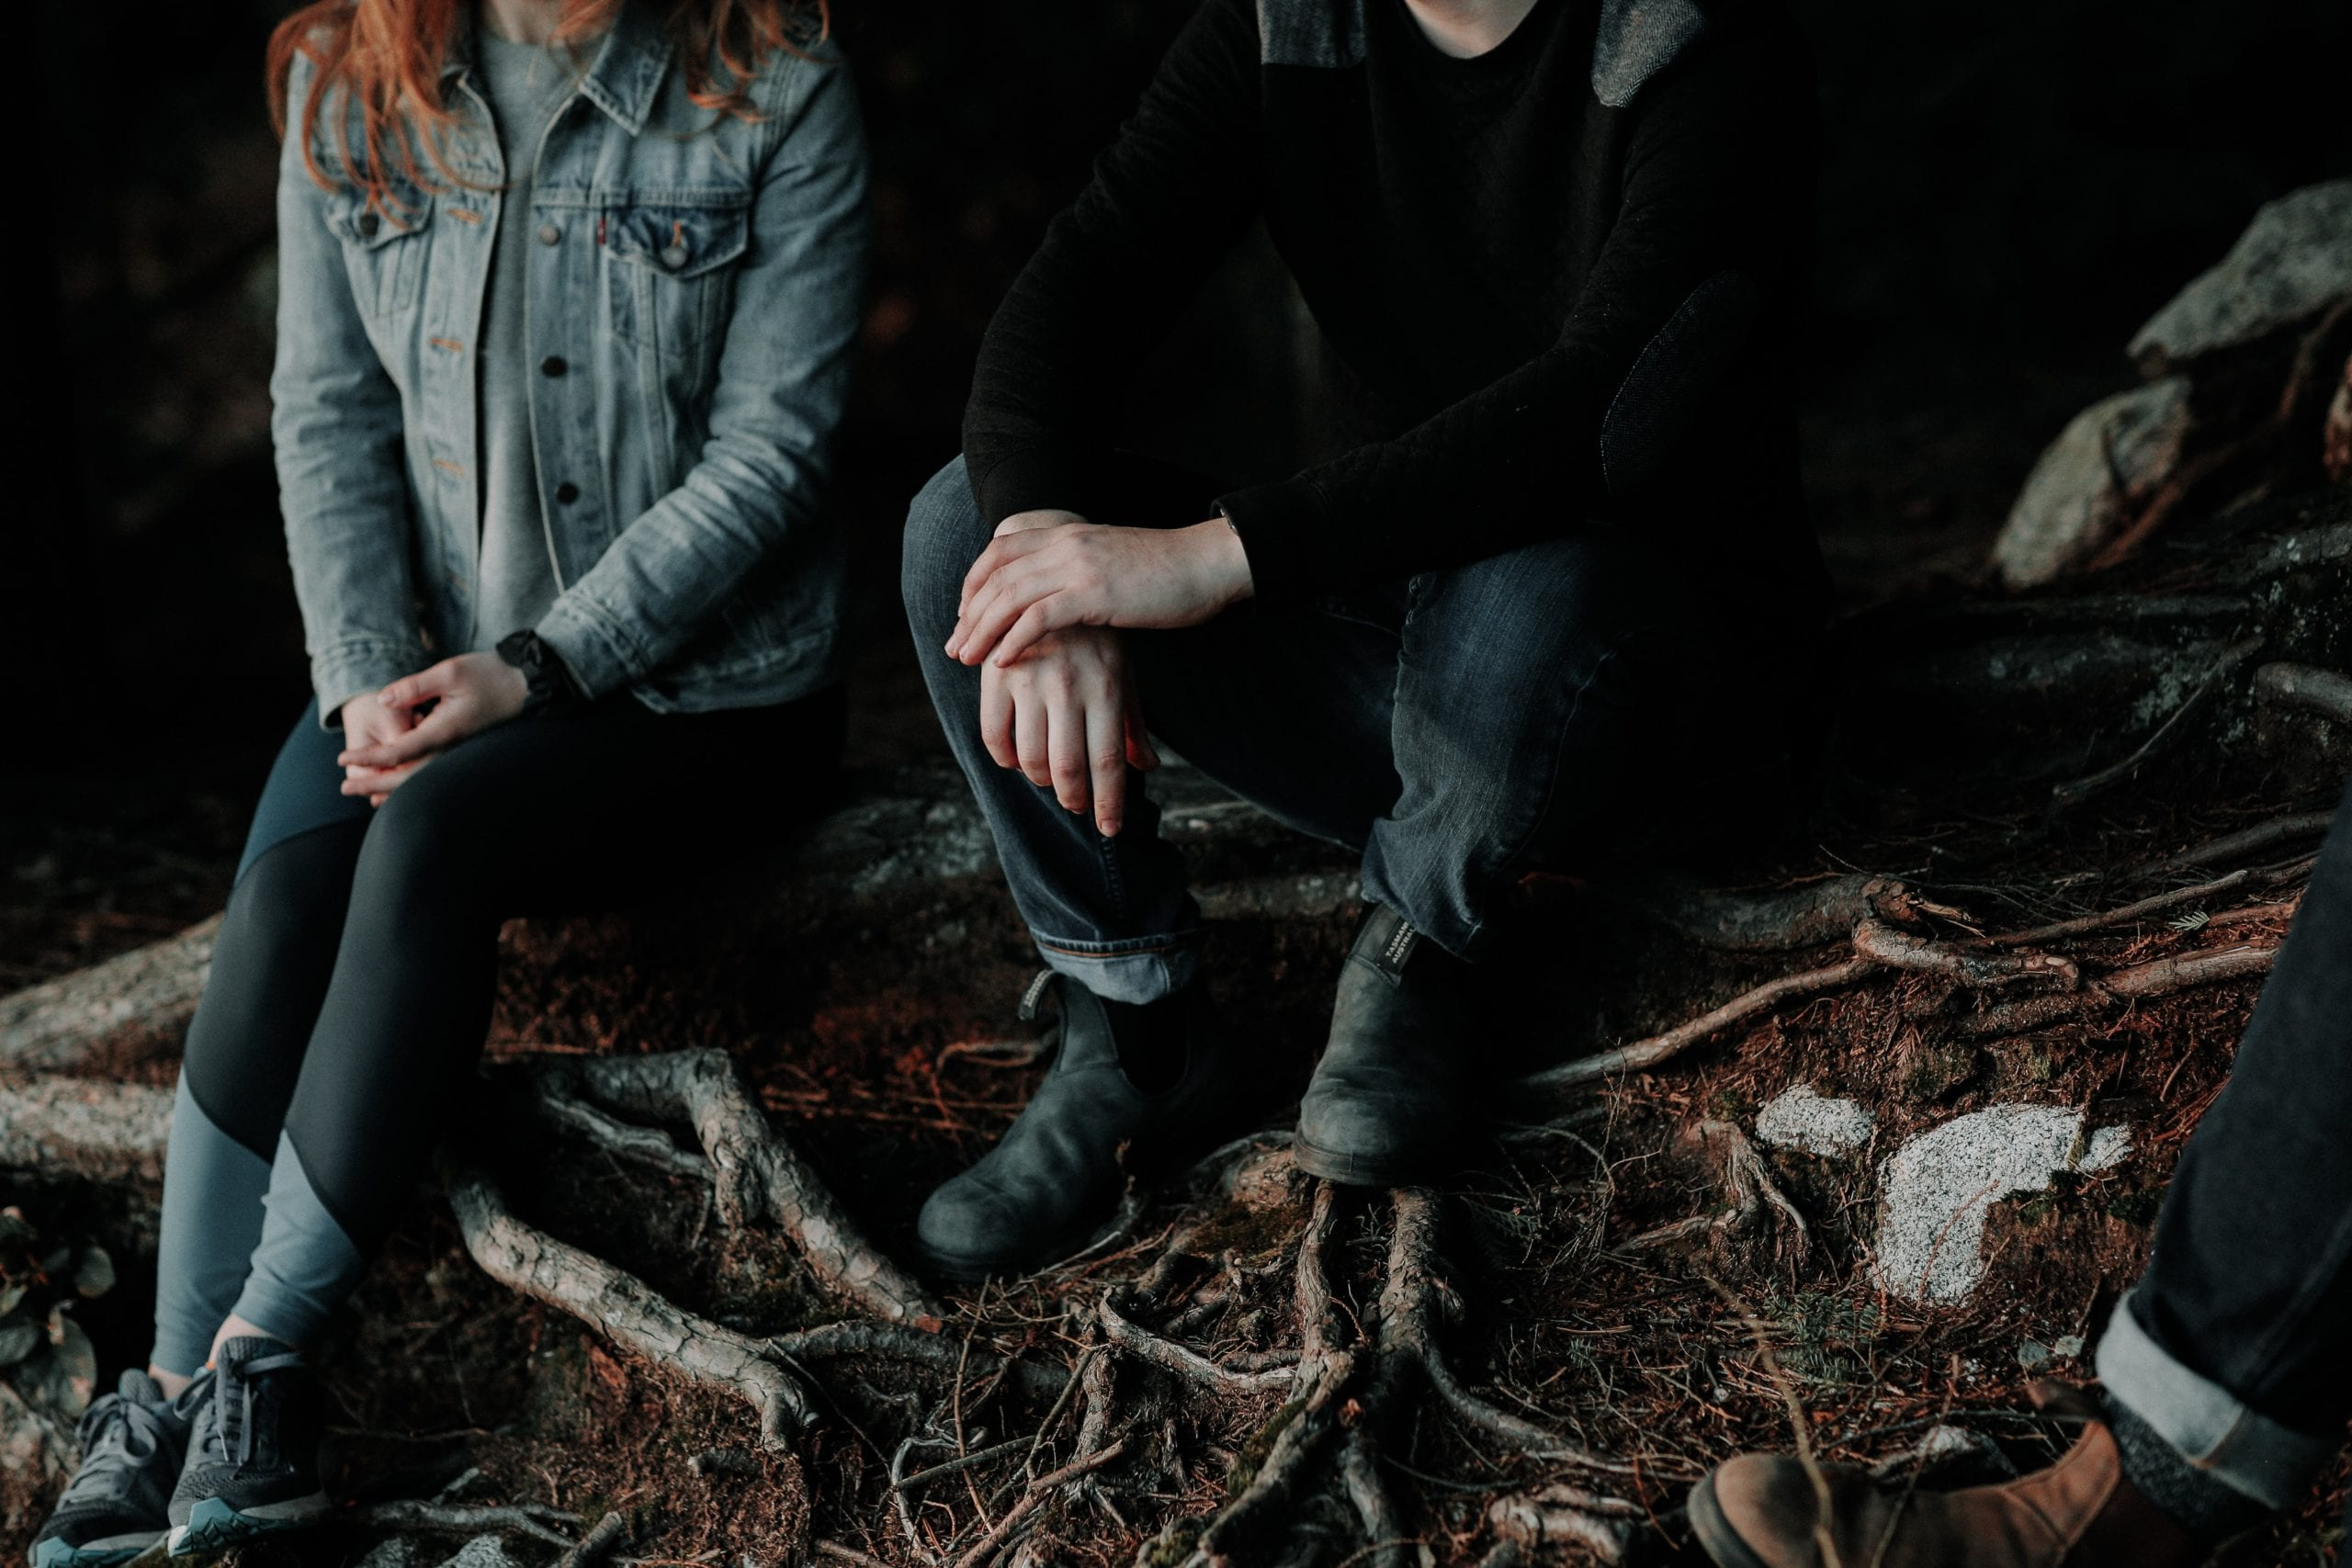 couple-talking-in-dark-woods-at-a-cafe-marriage-relationship-couples-counselling-therapy-communication-kelowna-british-columbia-alive-counselling